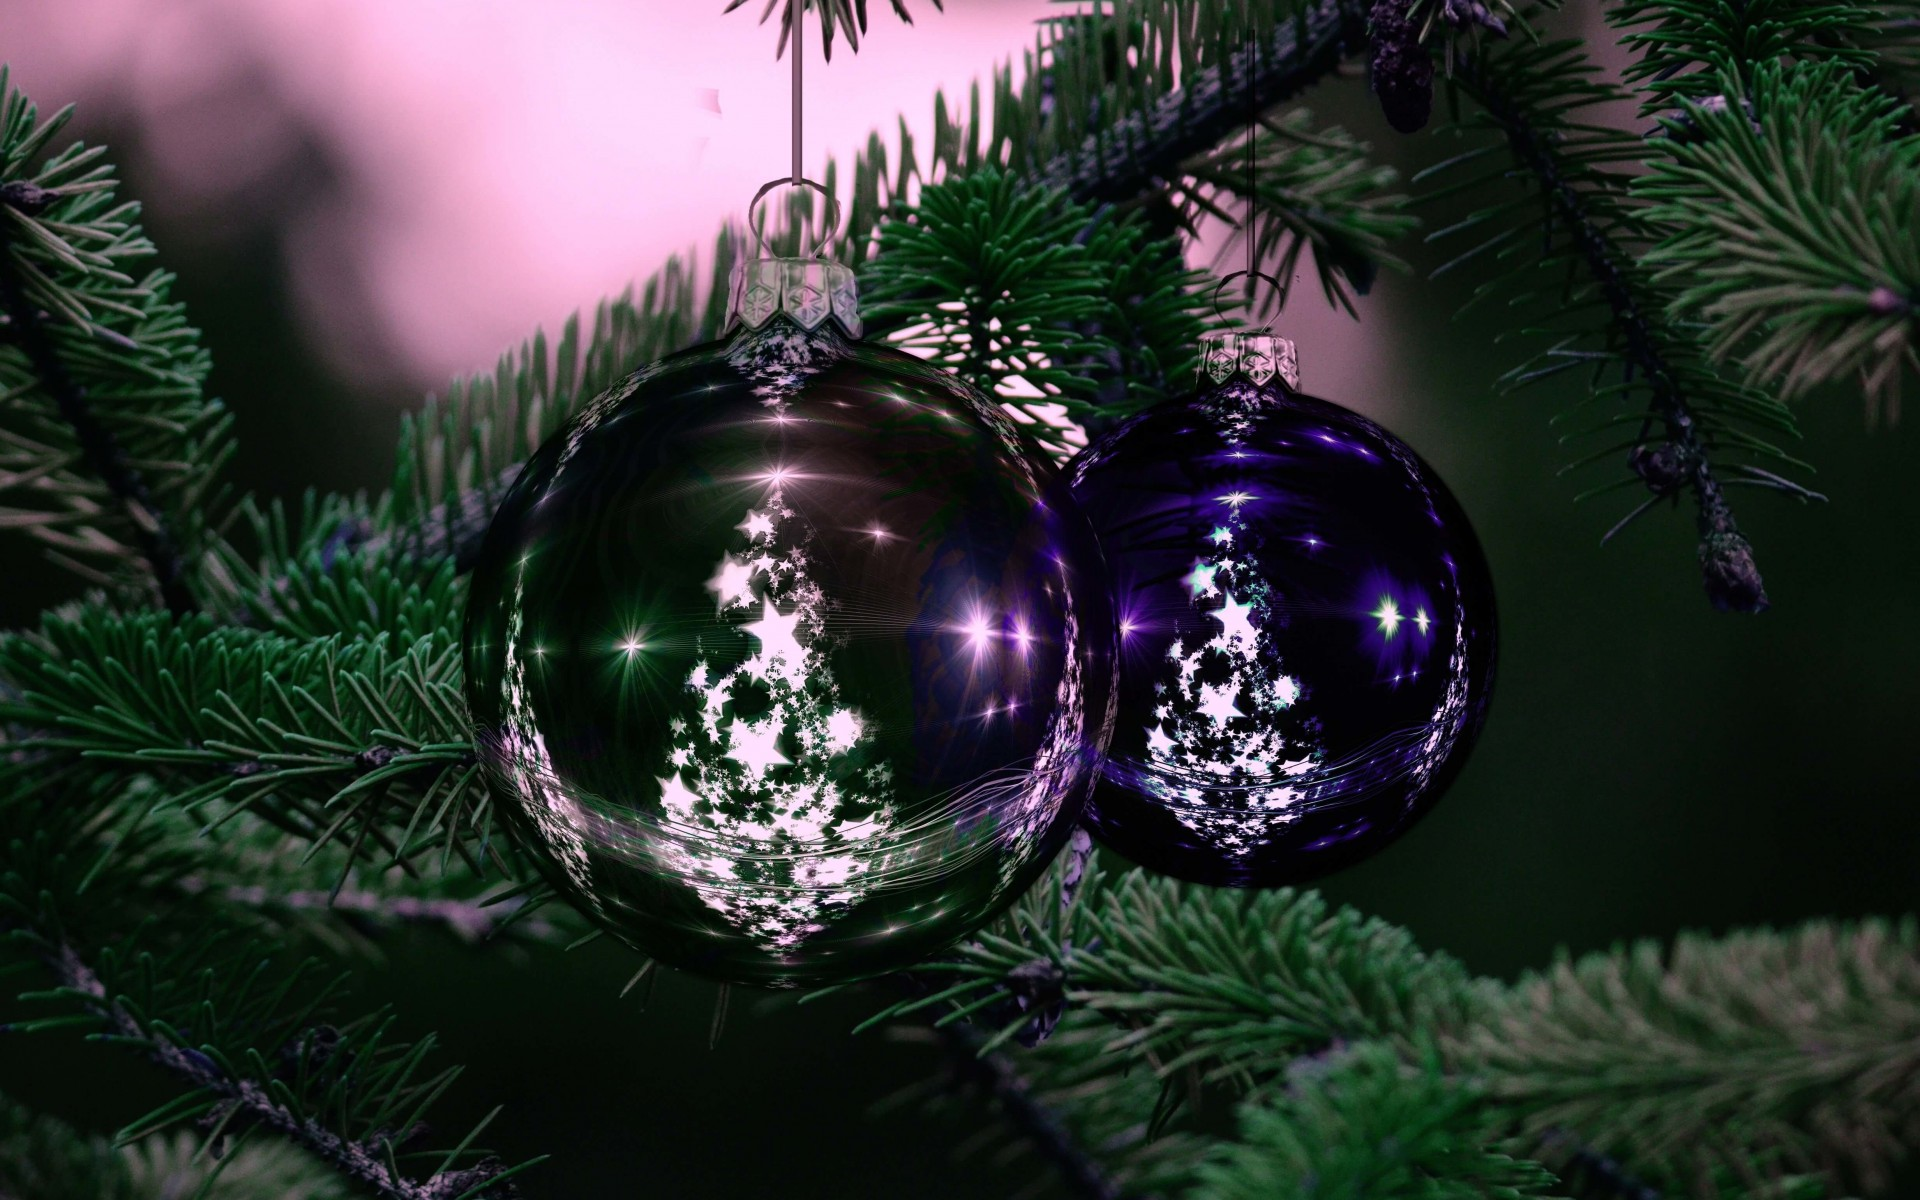 Beautiful Christmas Tree Ornaments Wallpaper for Desktop 1920x1200